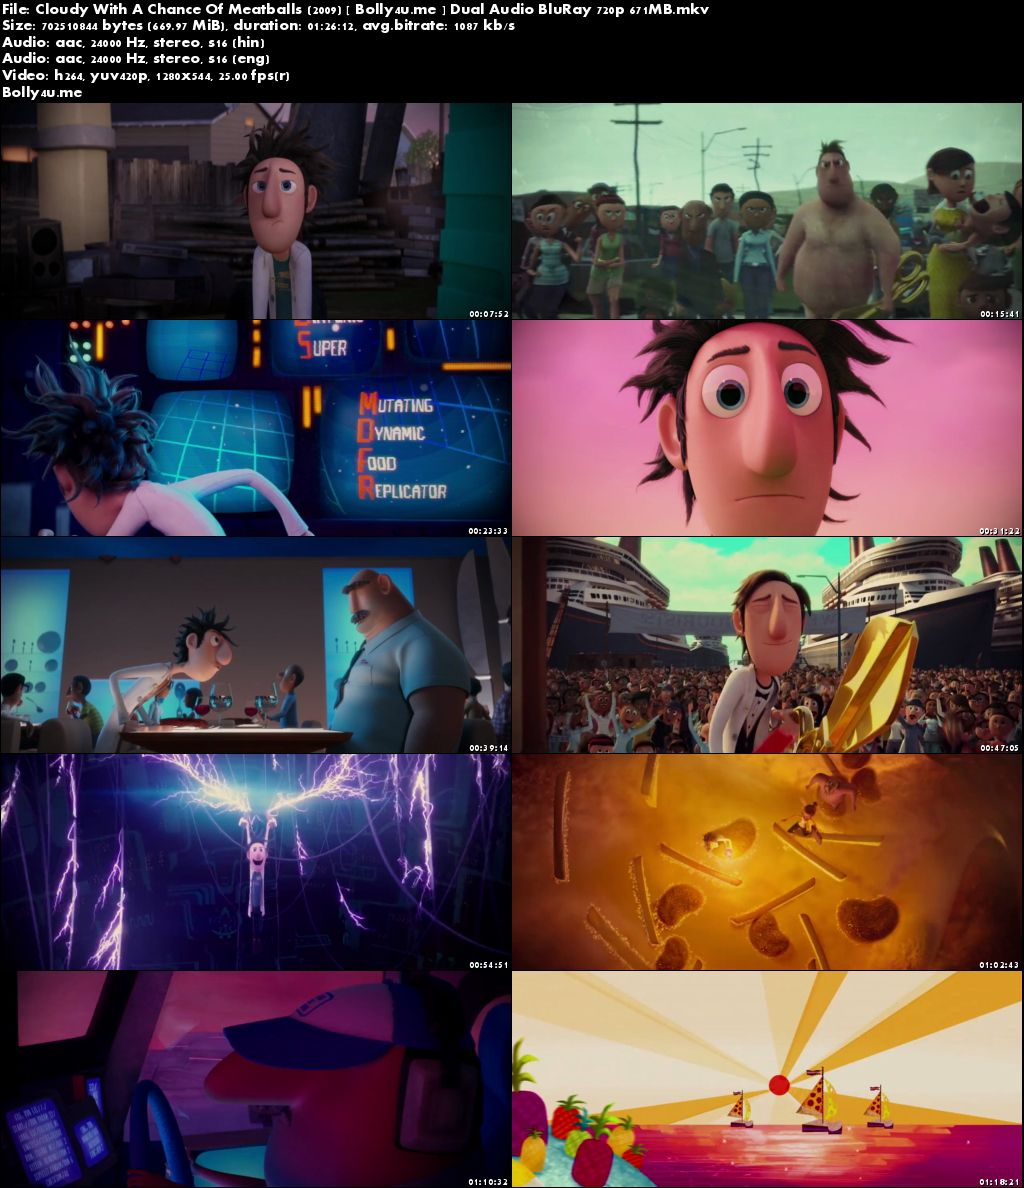 Cloudy With A Chance Of Meatballs 2009 BRRip 280MB Hindi Dual Audio 480p Download